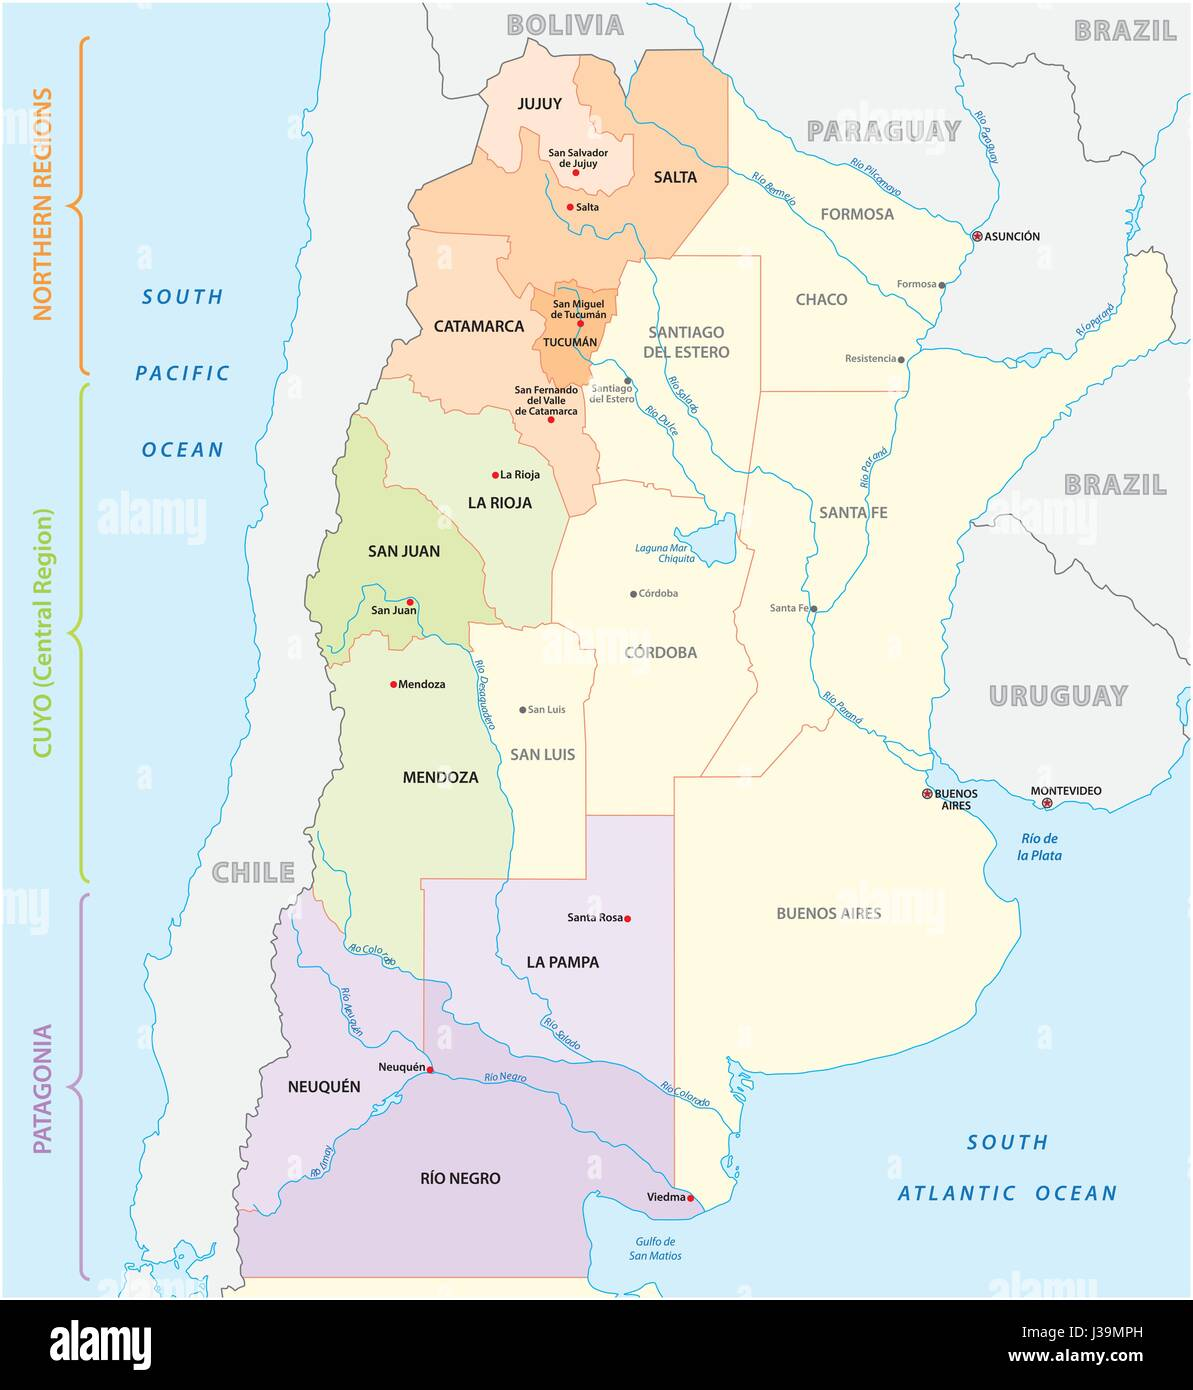 IllGotten Lands Deforestation And Isolation In Paraguays Gran - South america argentina map